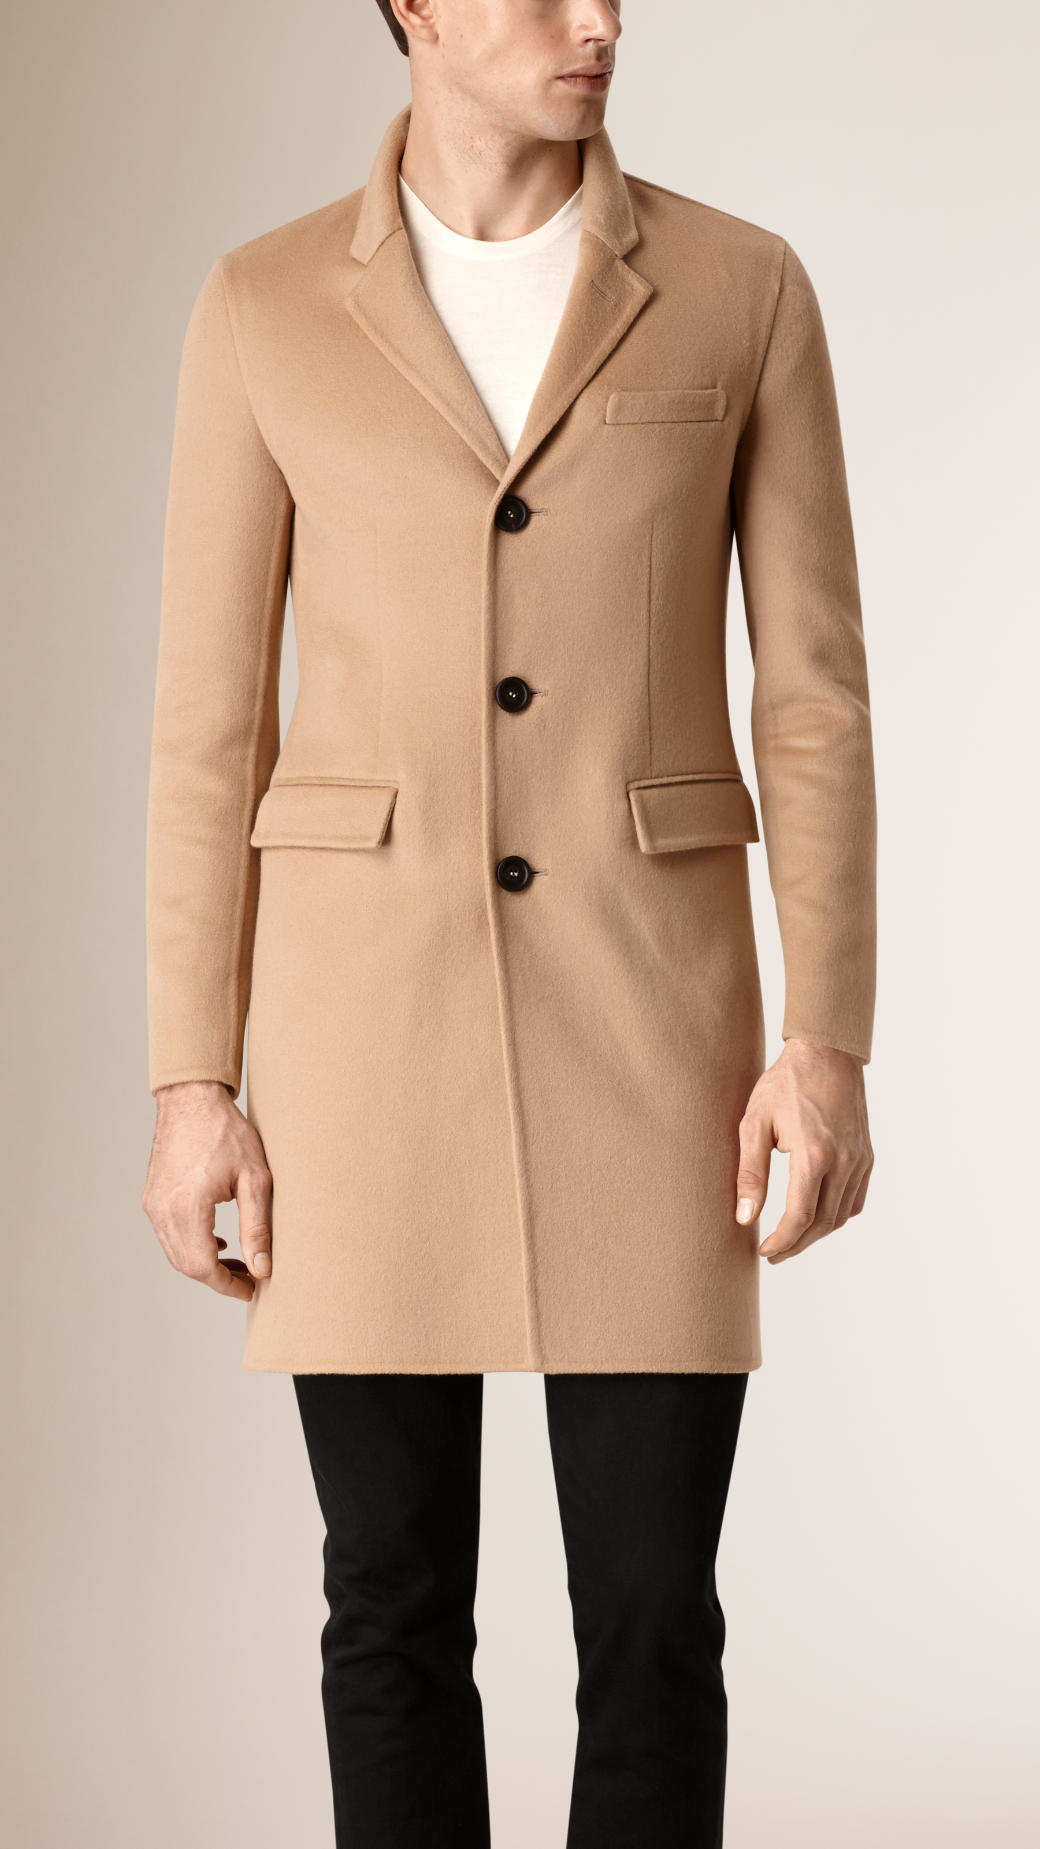 cashmere single men Shop the latest trends in cashmere at m&s order online for home delivery or free collection from  men's all men's sale coats & jackets  single bottle gifts .